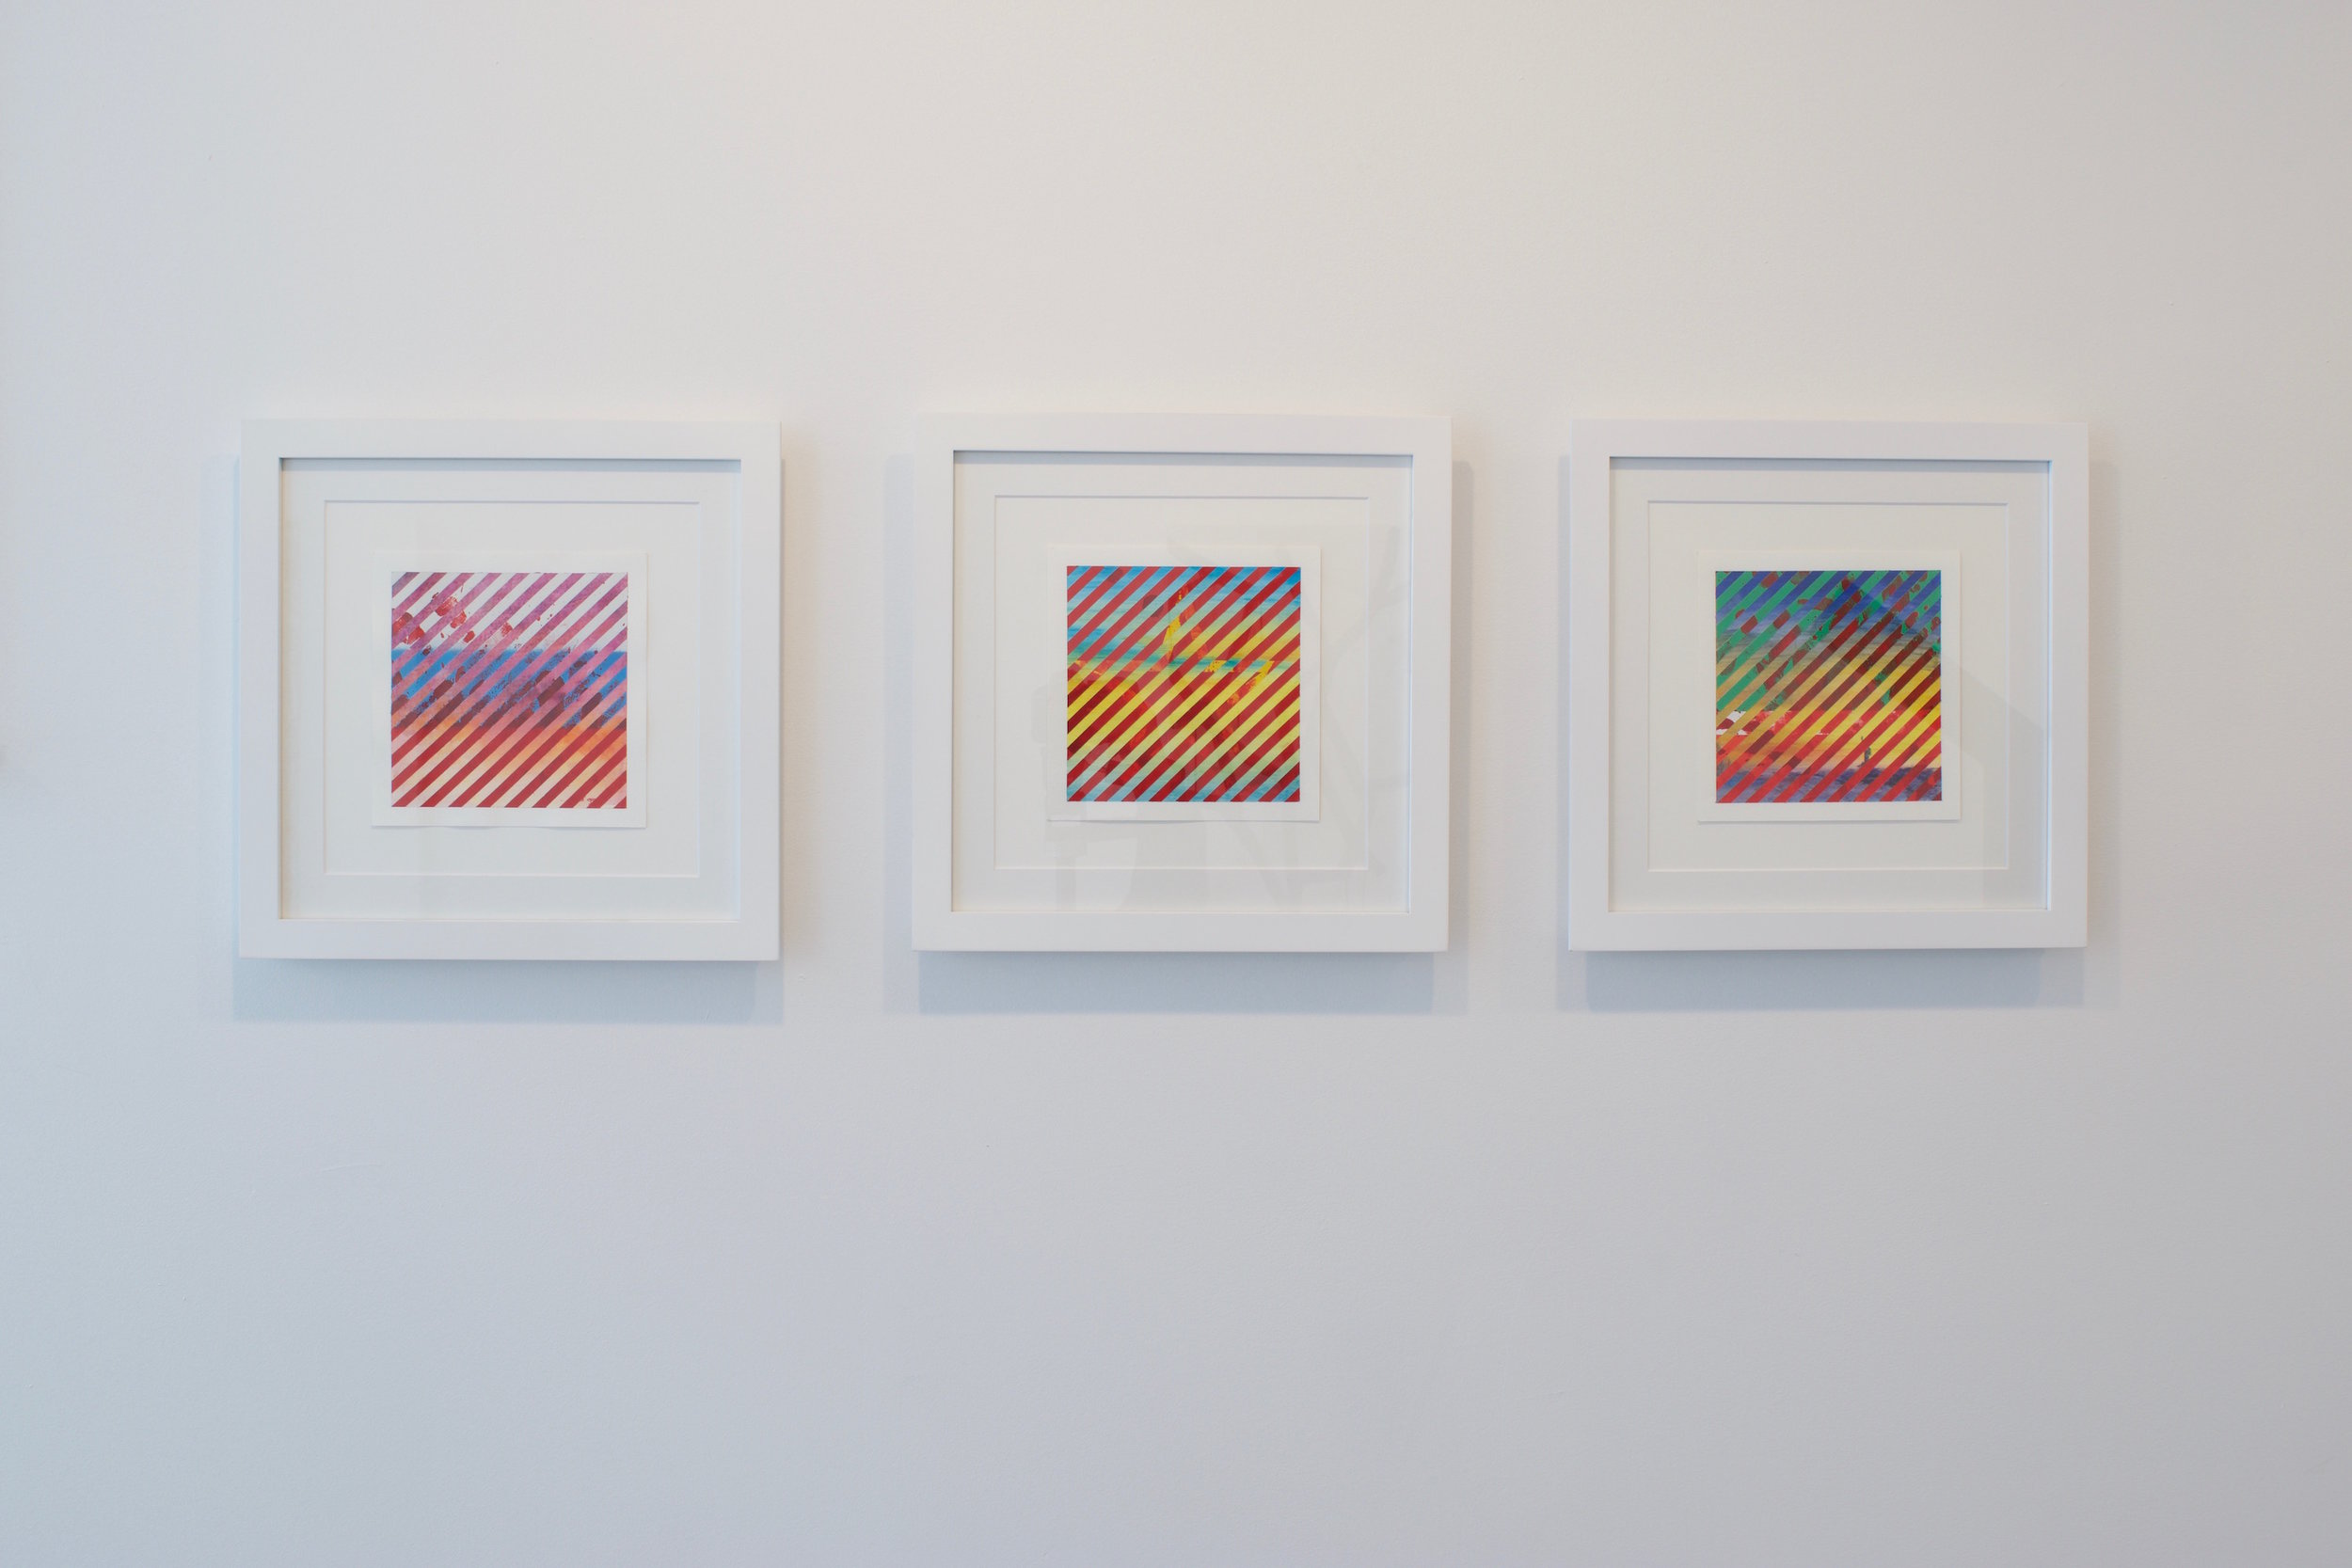 "Enrico Gomes, ""Red State, Sunsets, 2017. Acrylic and mixed media on paper, 7 x 7 inches (framed) 3 individual ones"